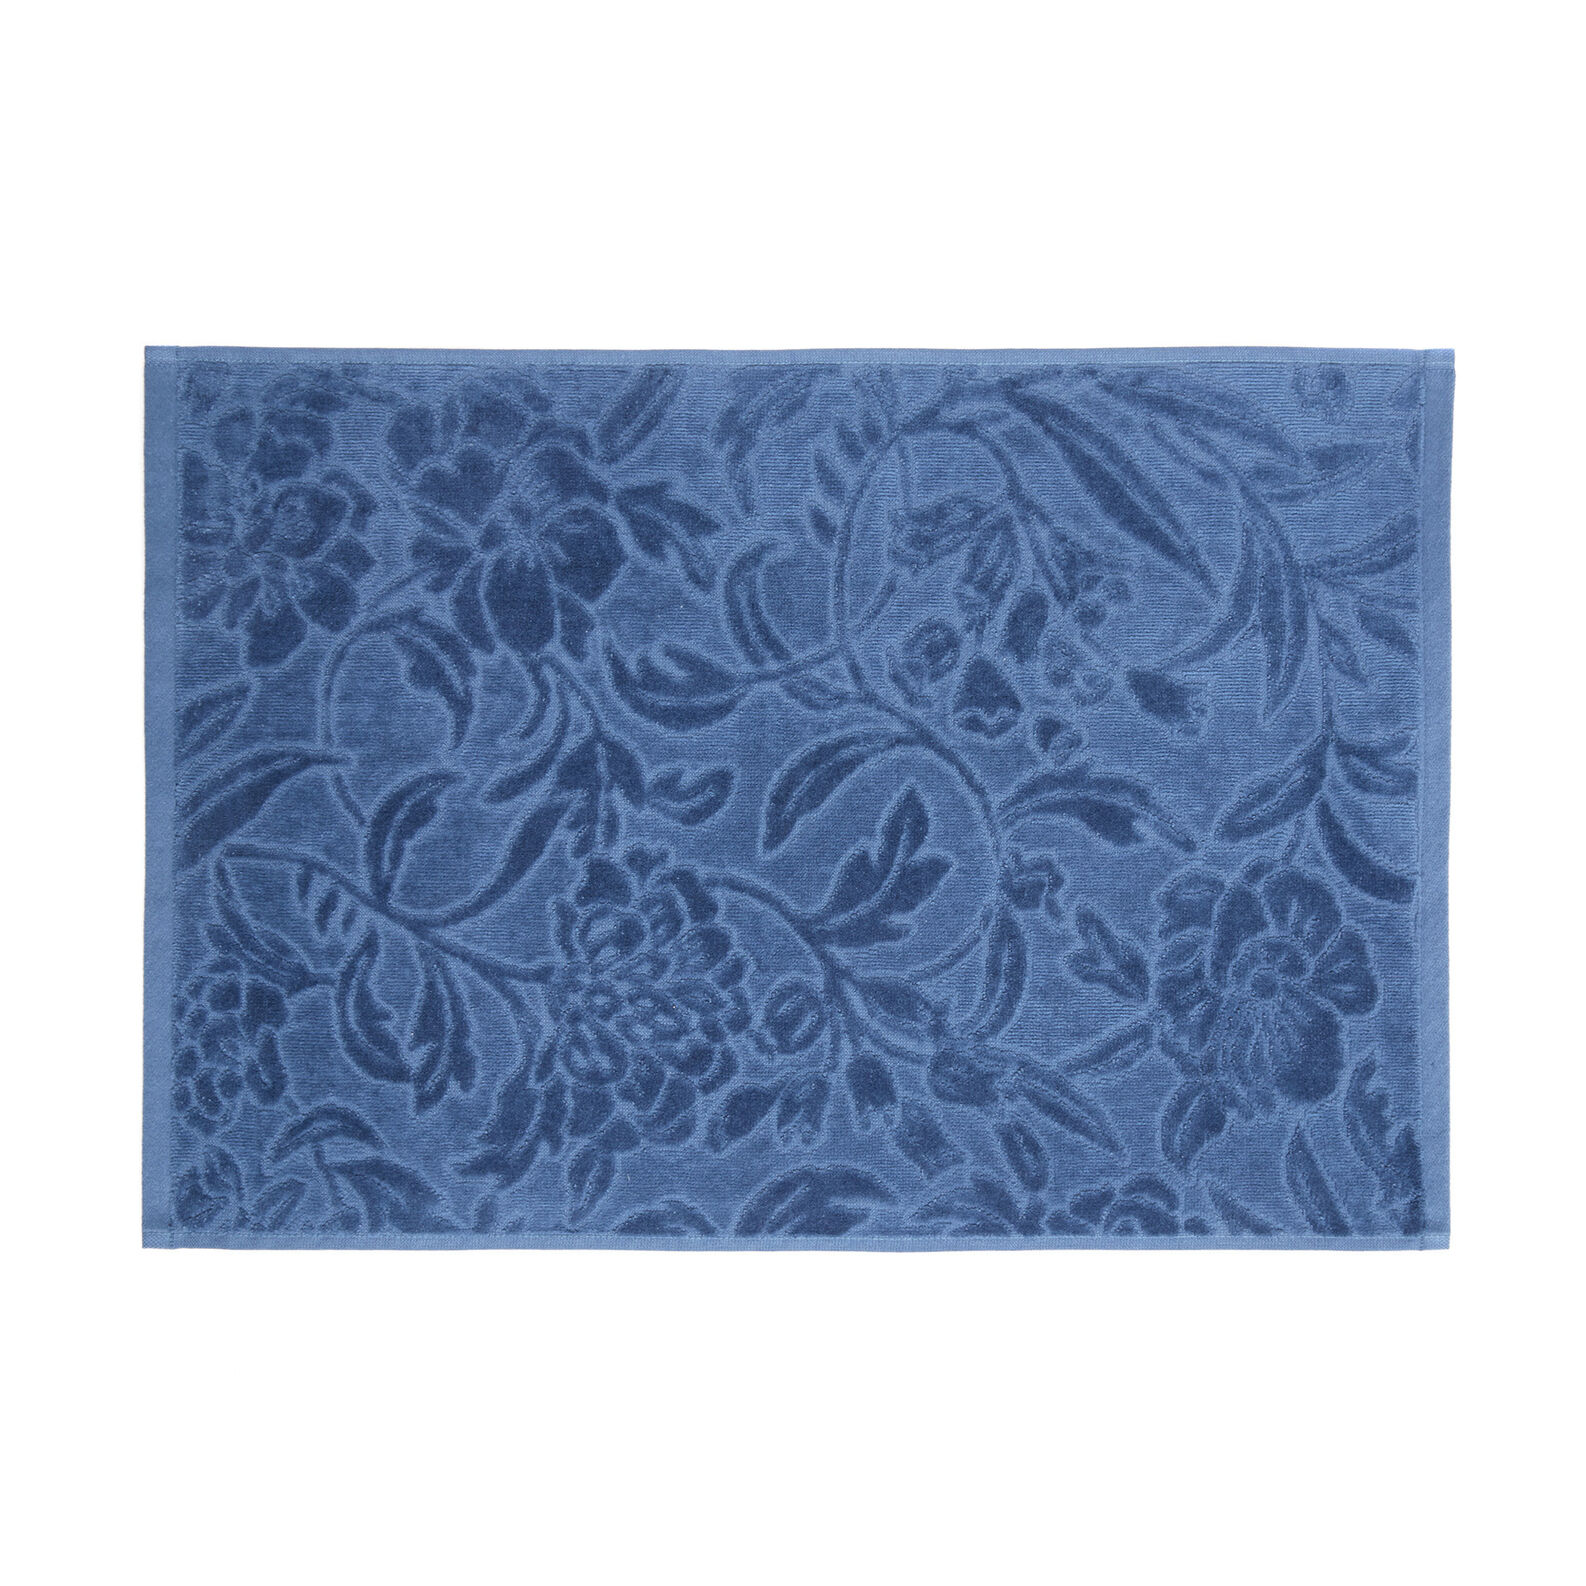 Towel in 100% cotton with damask design